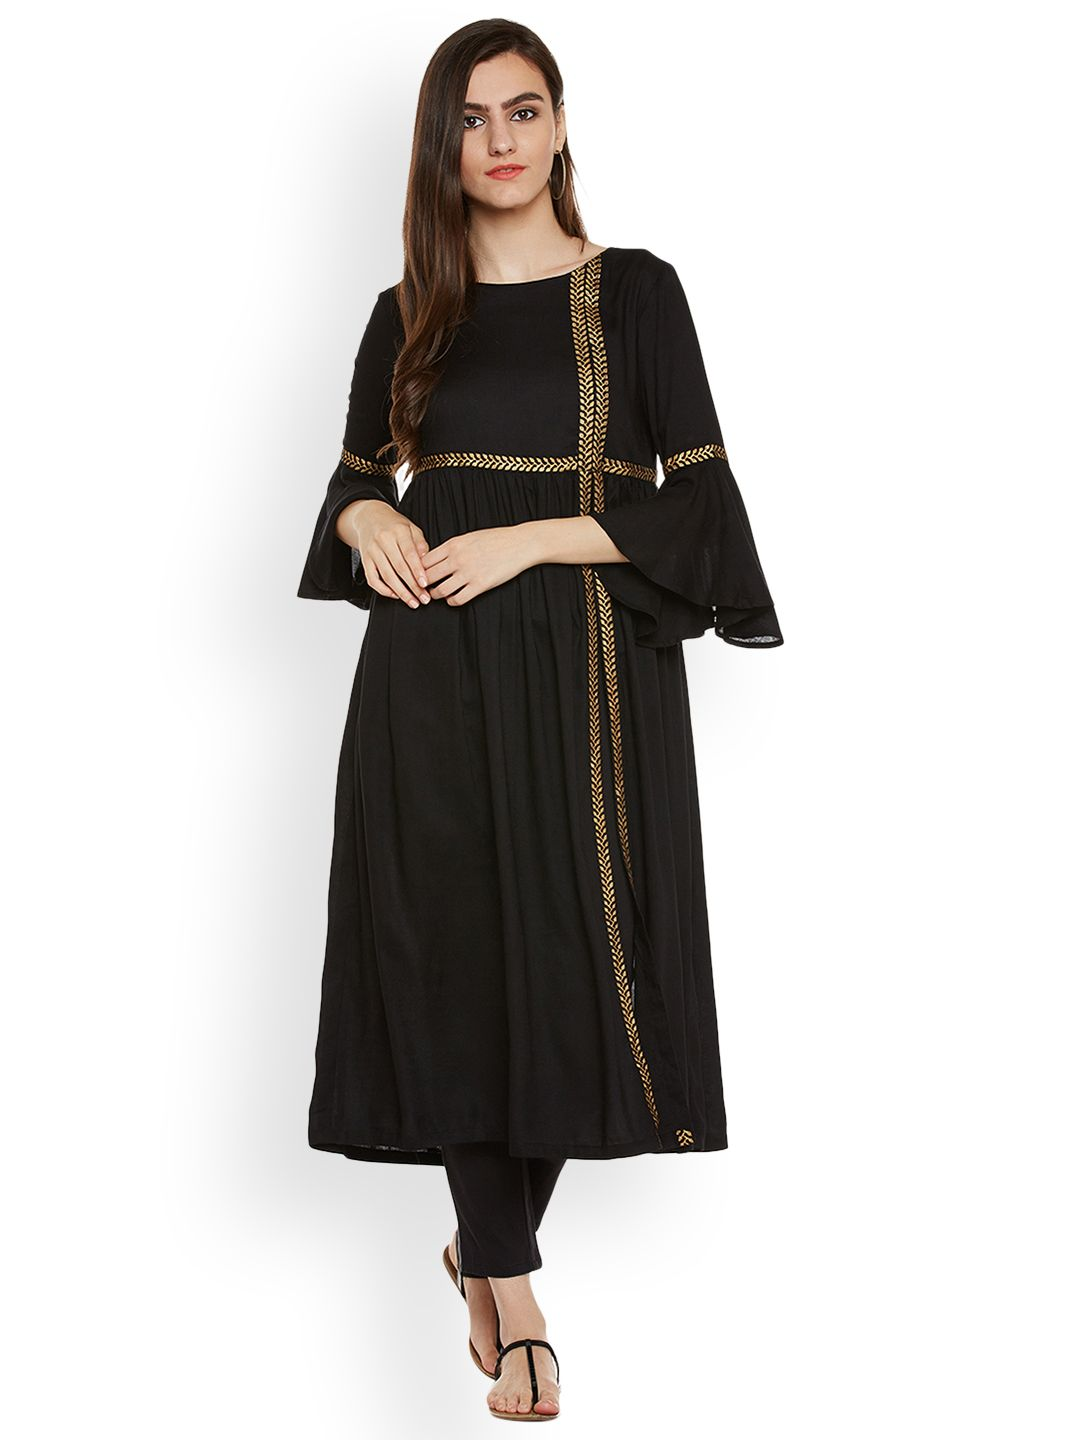 80dc54e151c 9rasa Black Solid A-Line Kurta #Black #Solid #ALine #Kurta | Latest ...